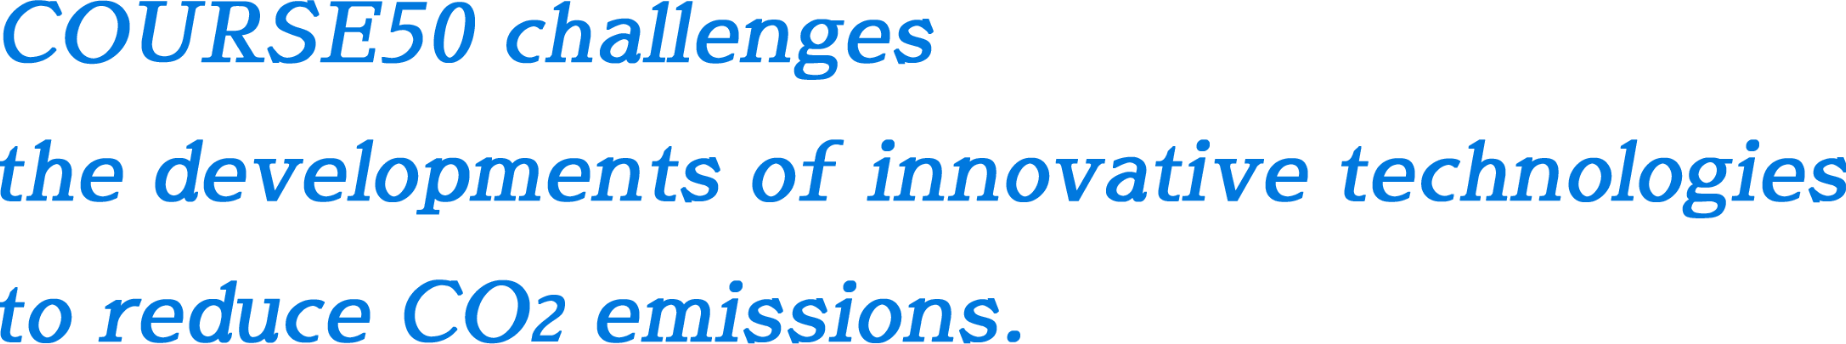 Course50 challenges the developments of  innovative technologies to reduce CO2 emissions.